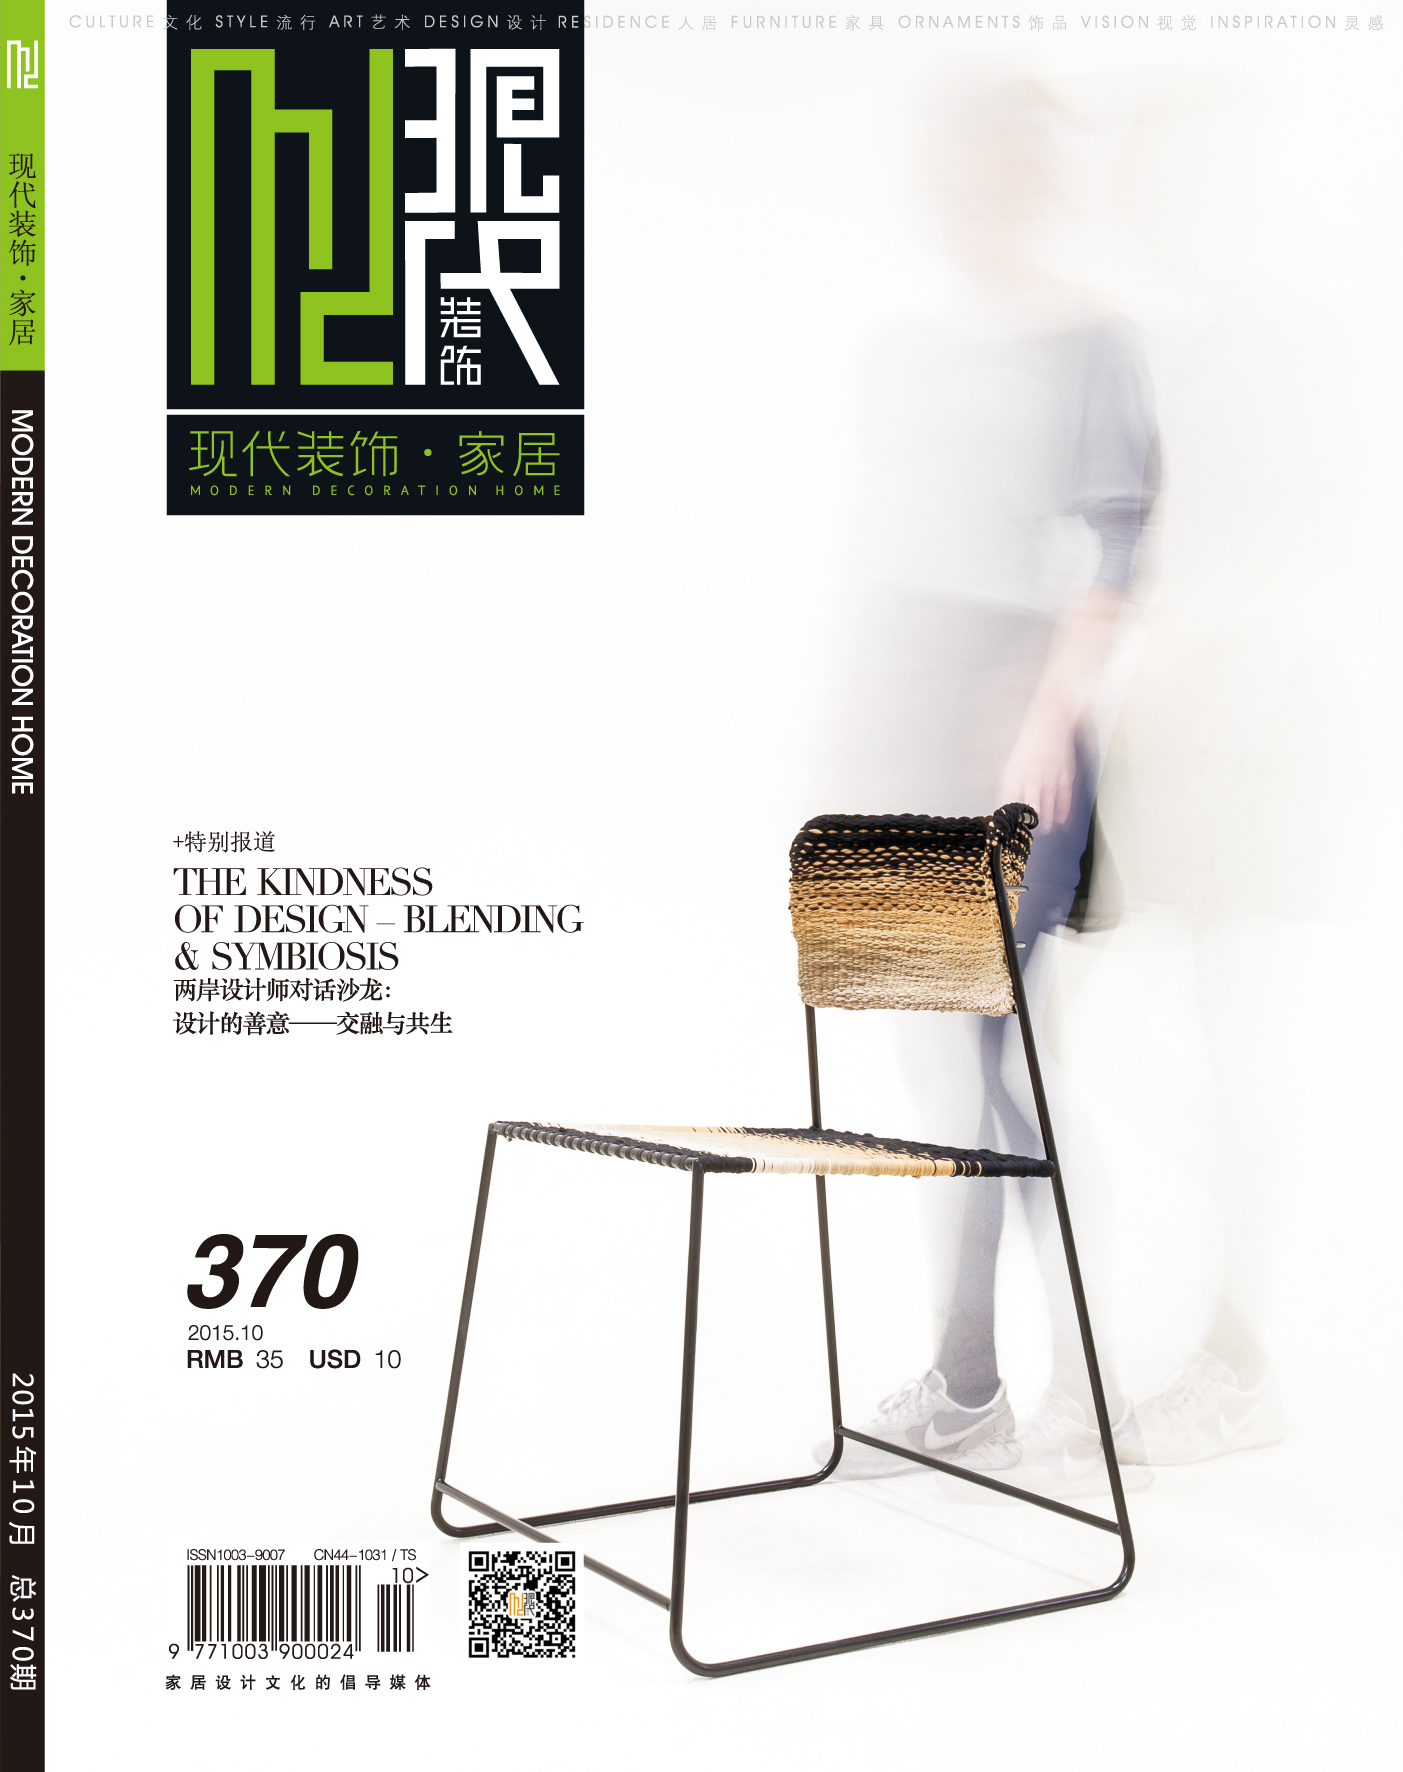 FRONT COVER: MODERN DECORATION, Oct. 2015